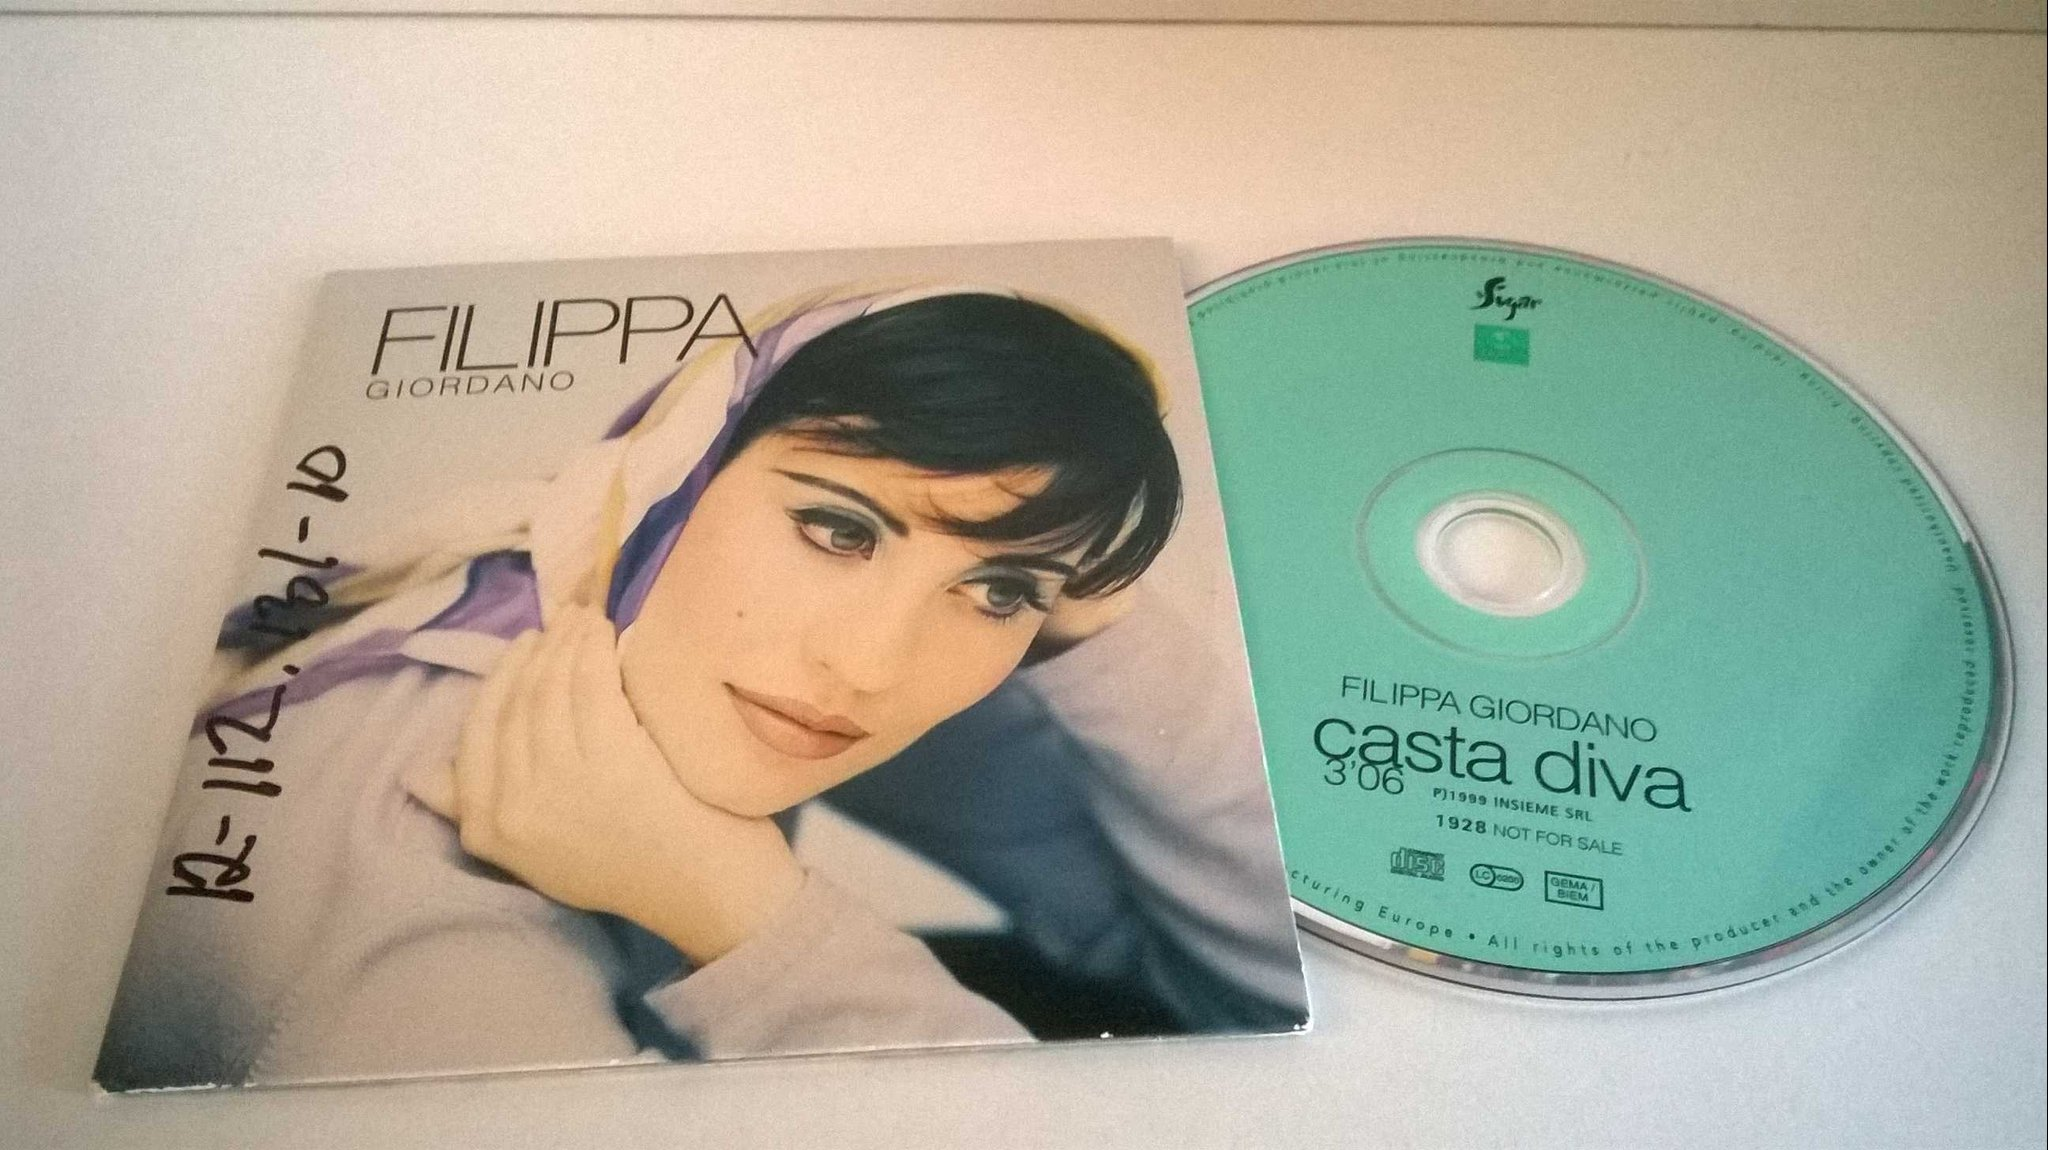 Filippa Giordano - Casta Diva, single CD